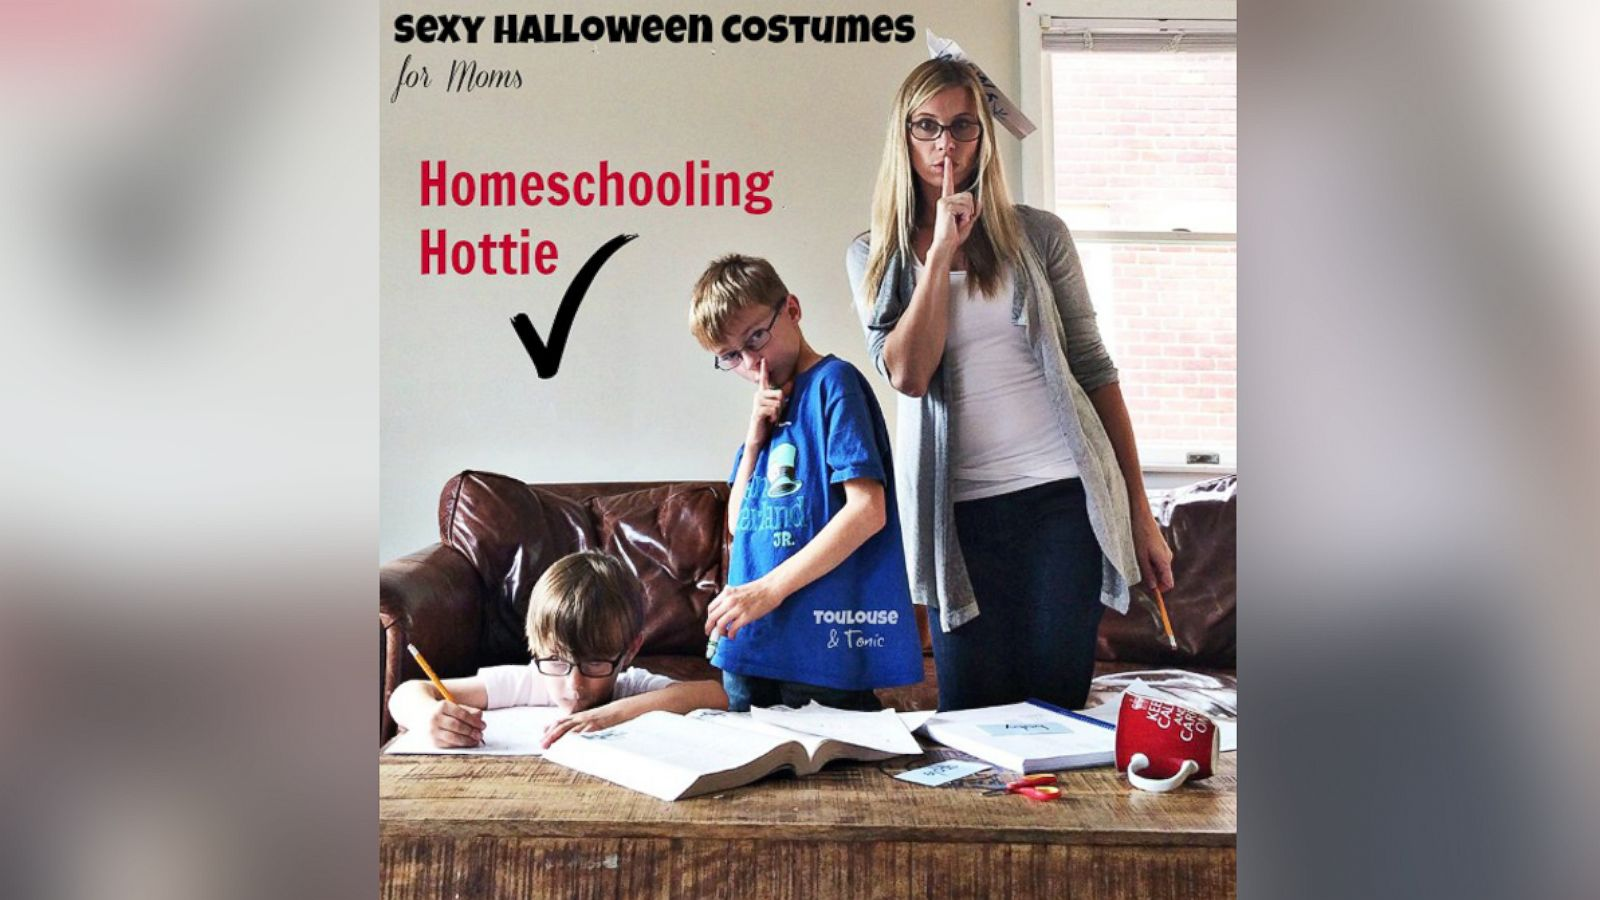 Halloween Toulouse.Hilarious Sexy Mom Costume Photo Series Pokes Fun At Risque Halloween Outfits Abc News